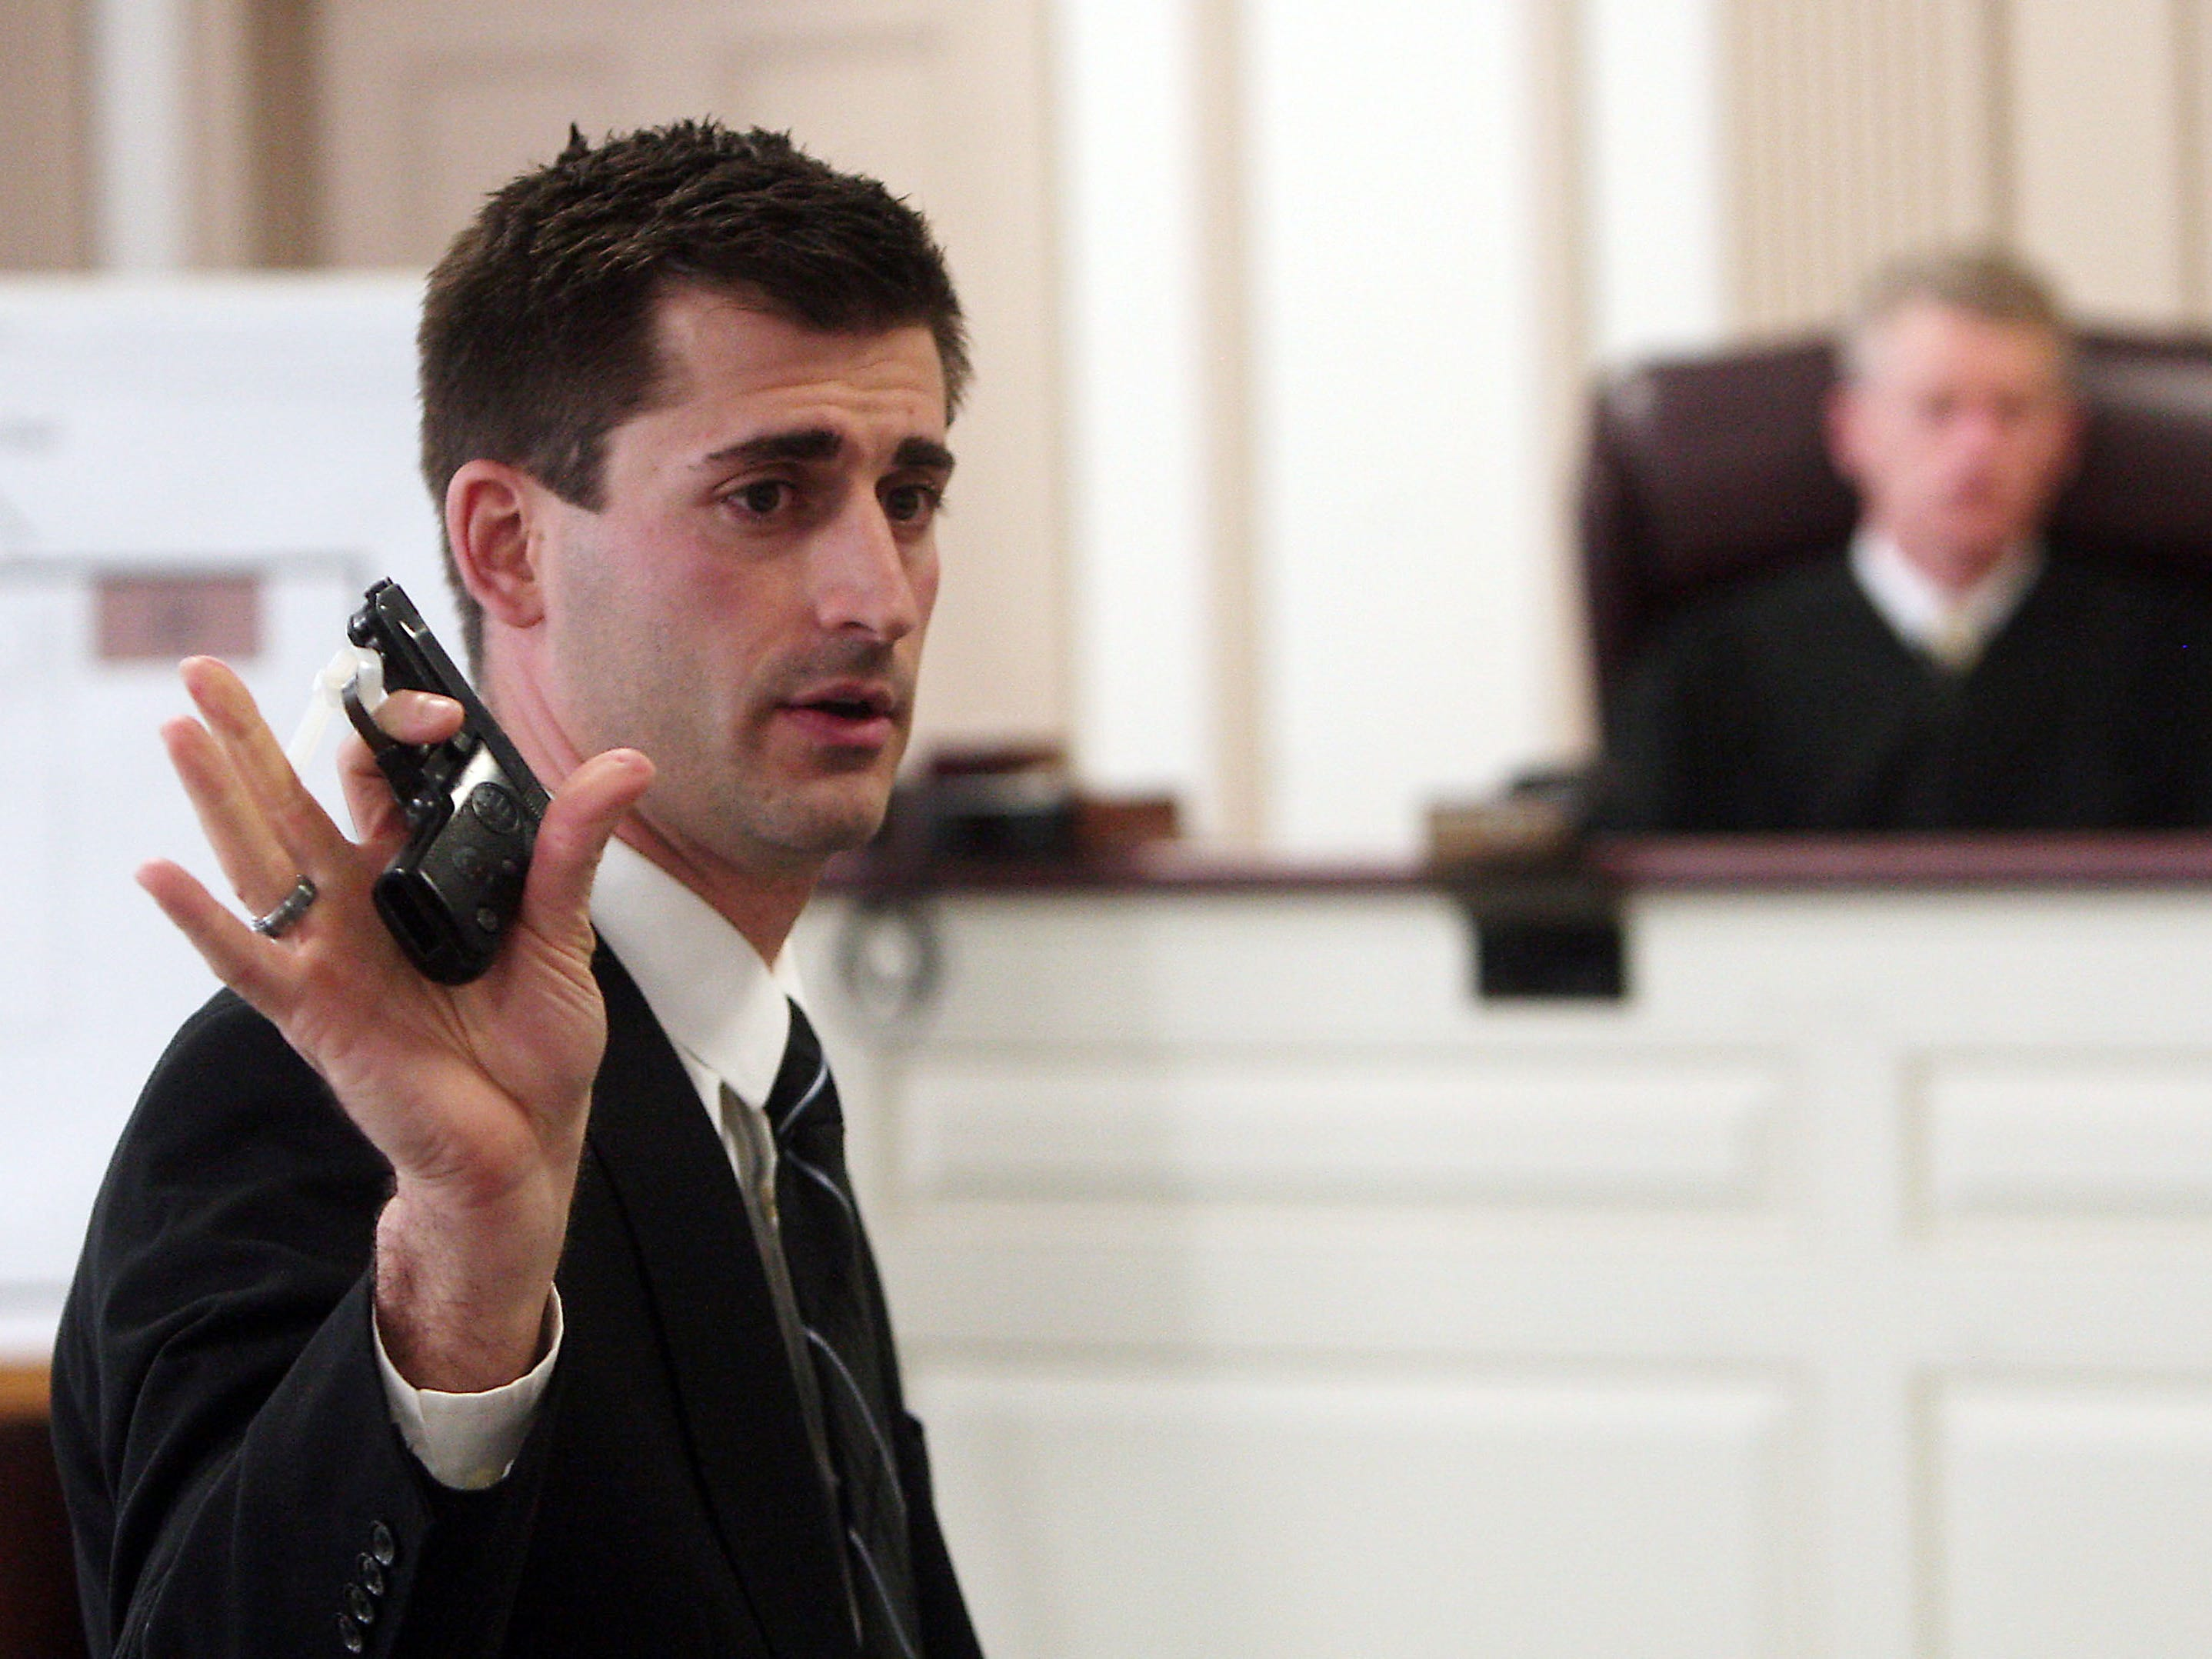 Morristown, N.J.- January 29, 2013--- Assistant Morris County Prosecutor Matthew Troiano holds a small caliber handgun found at the scene and put into evidence during closing summations in the murder trial of Amalia Mirasola charged with the shooting death of her husband in their Butler home in 2010. Mirasola, 47, is seriously debilitated today by multiple sclerosis, which was less severe at the time of the shooting. 